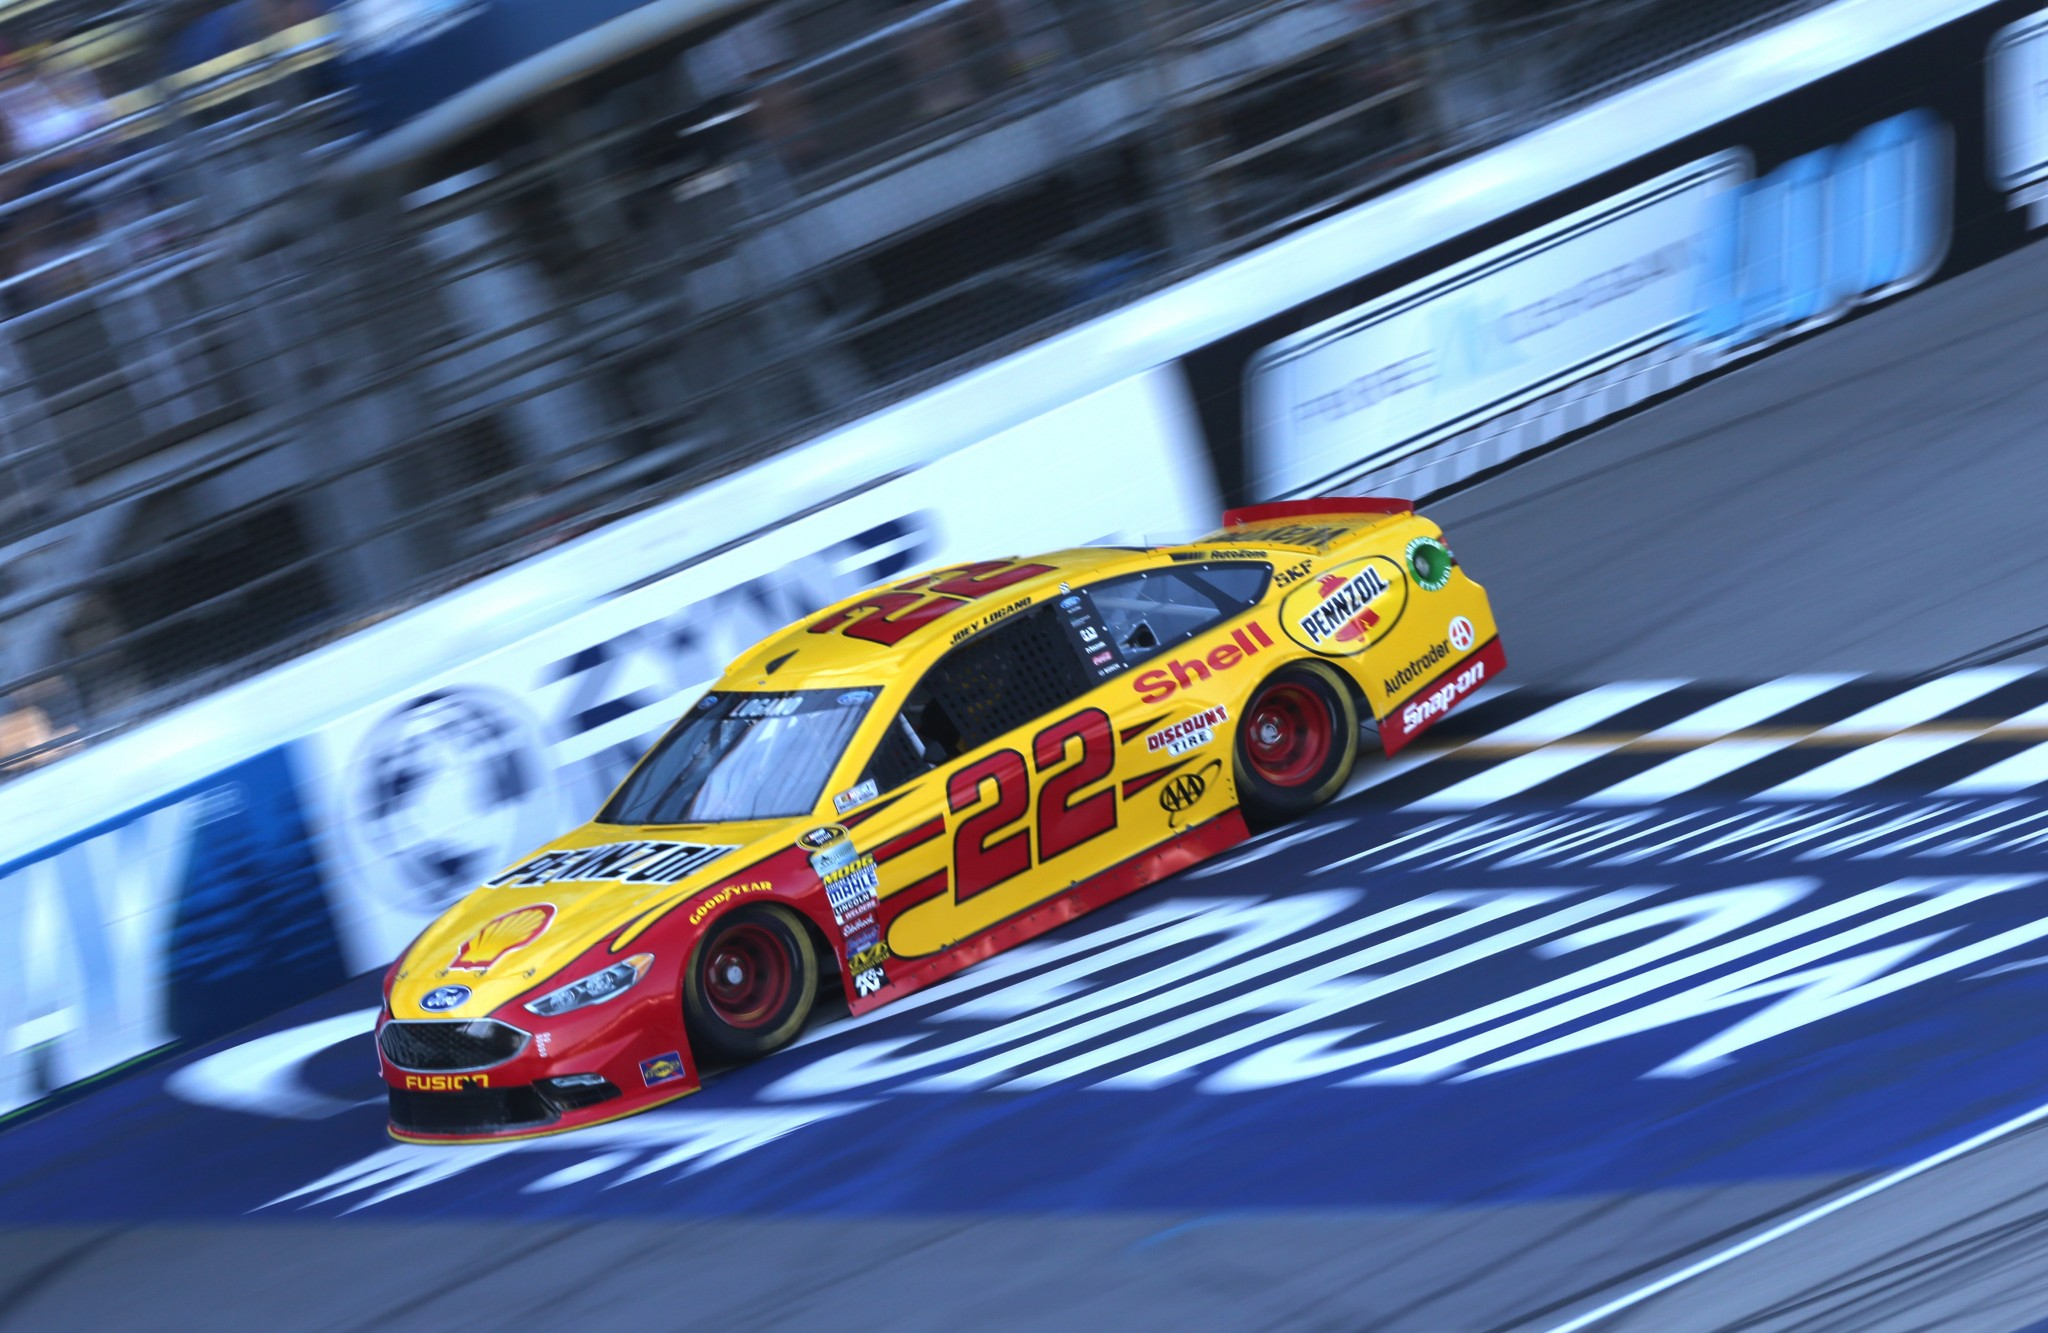 Joey Logano led 138 laps in winning at Michigan in June (Getty Images)